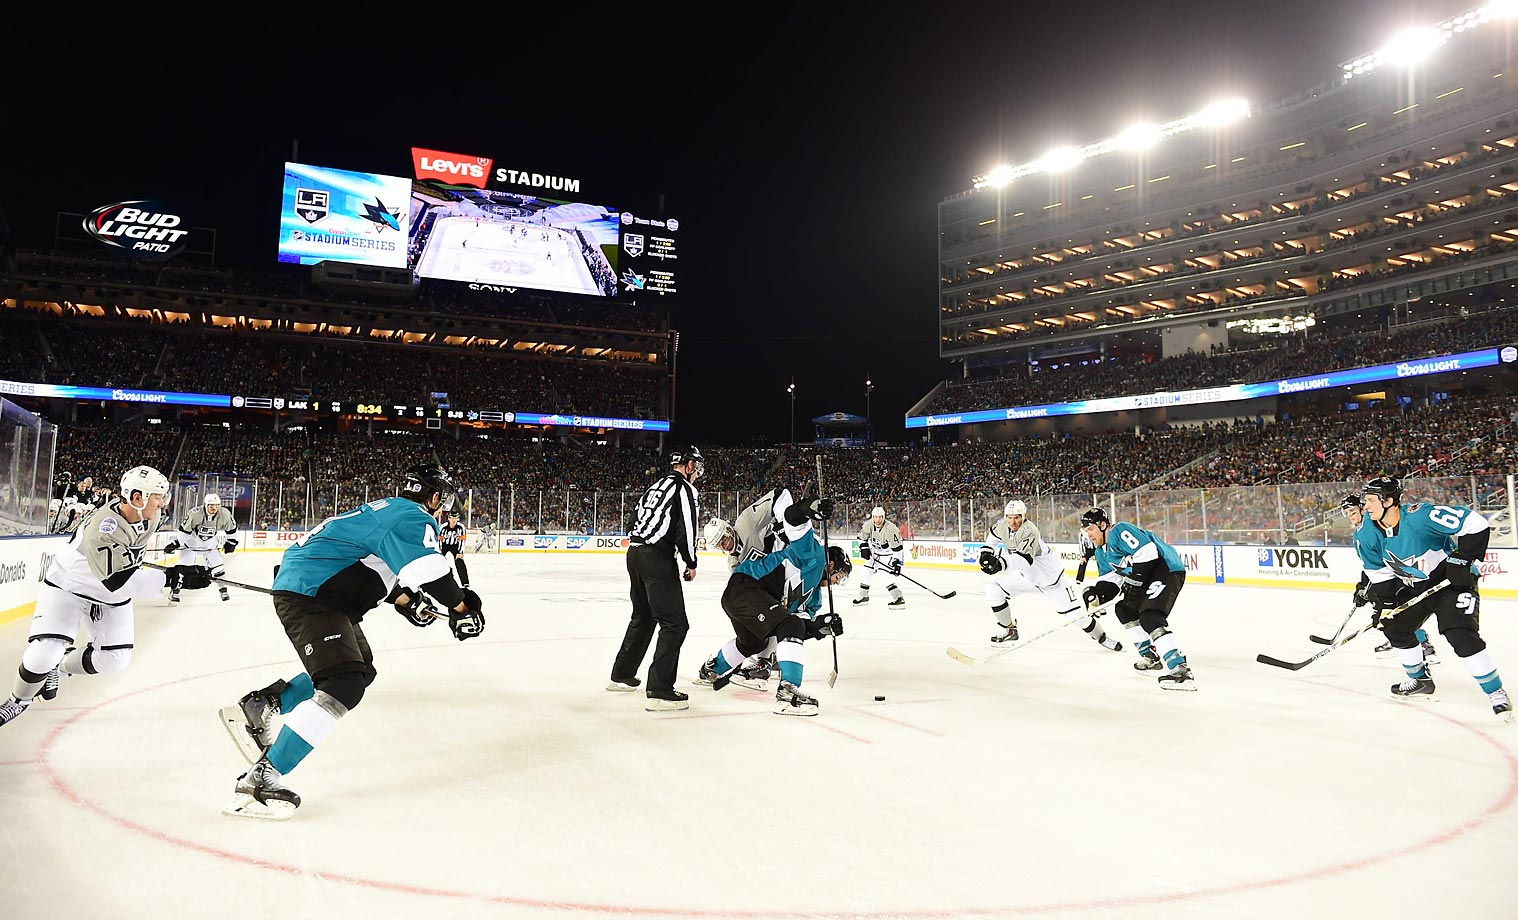 The Los Angeles Kings and San Jose Sharks face off against each other outdoors at Levi's Stadium in Santa Clara, Calif.